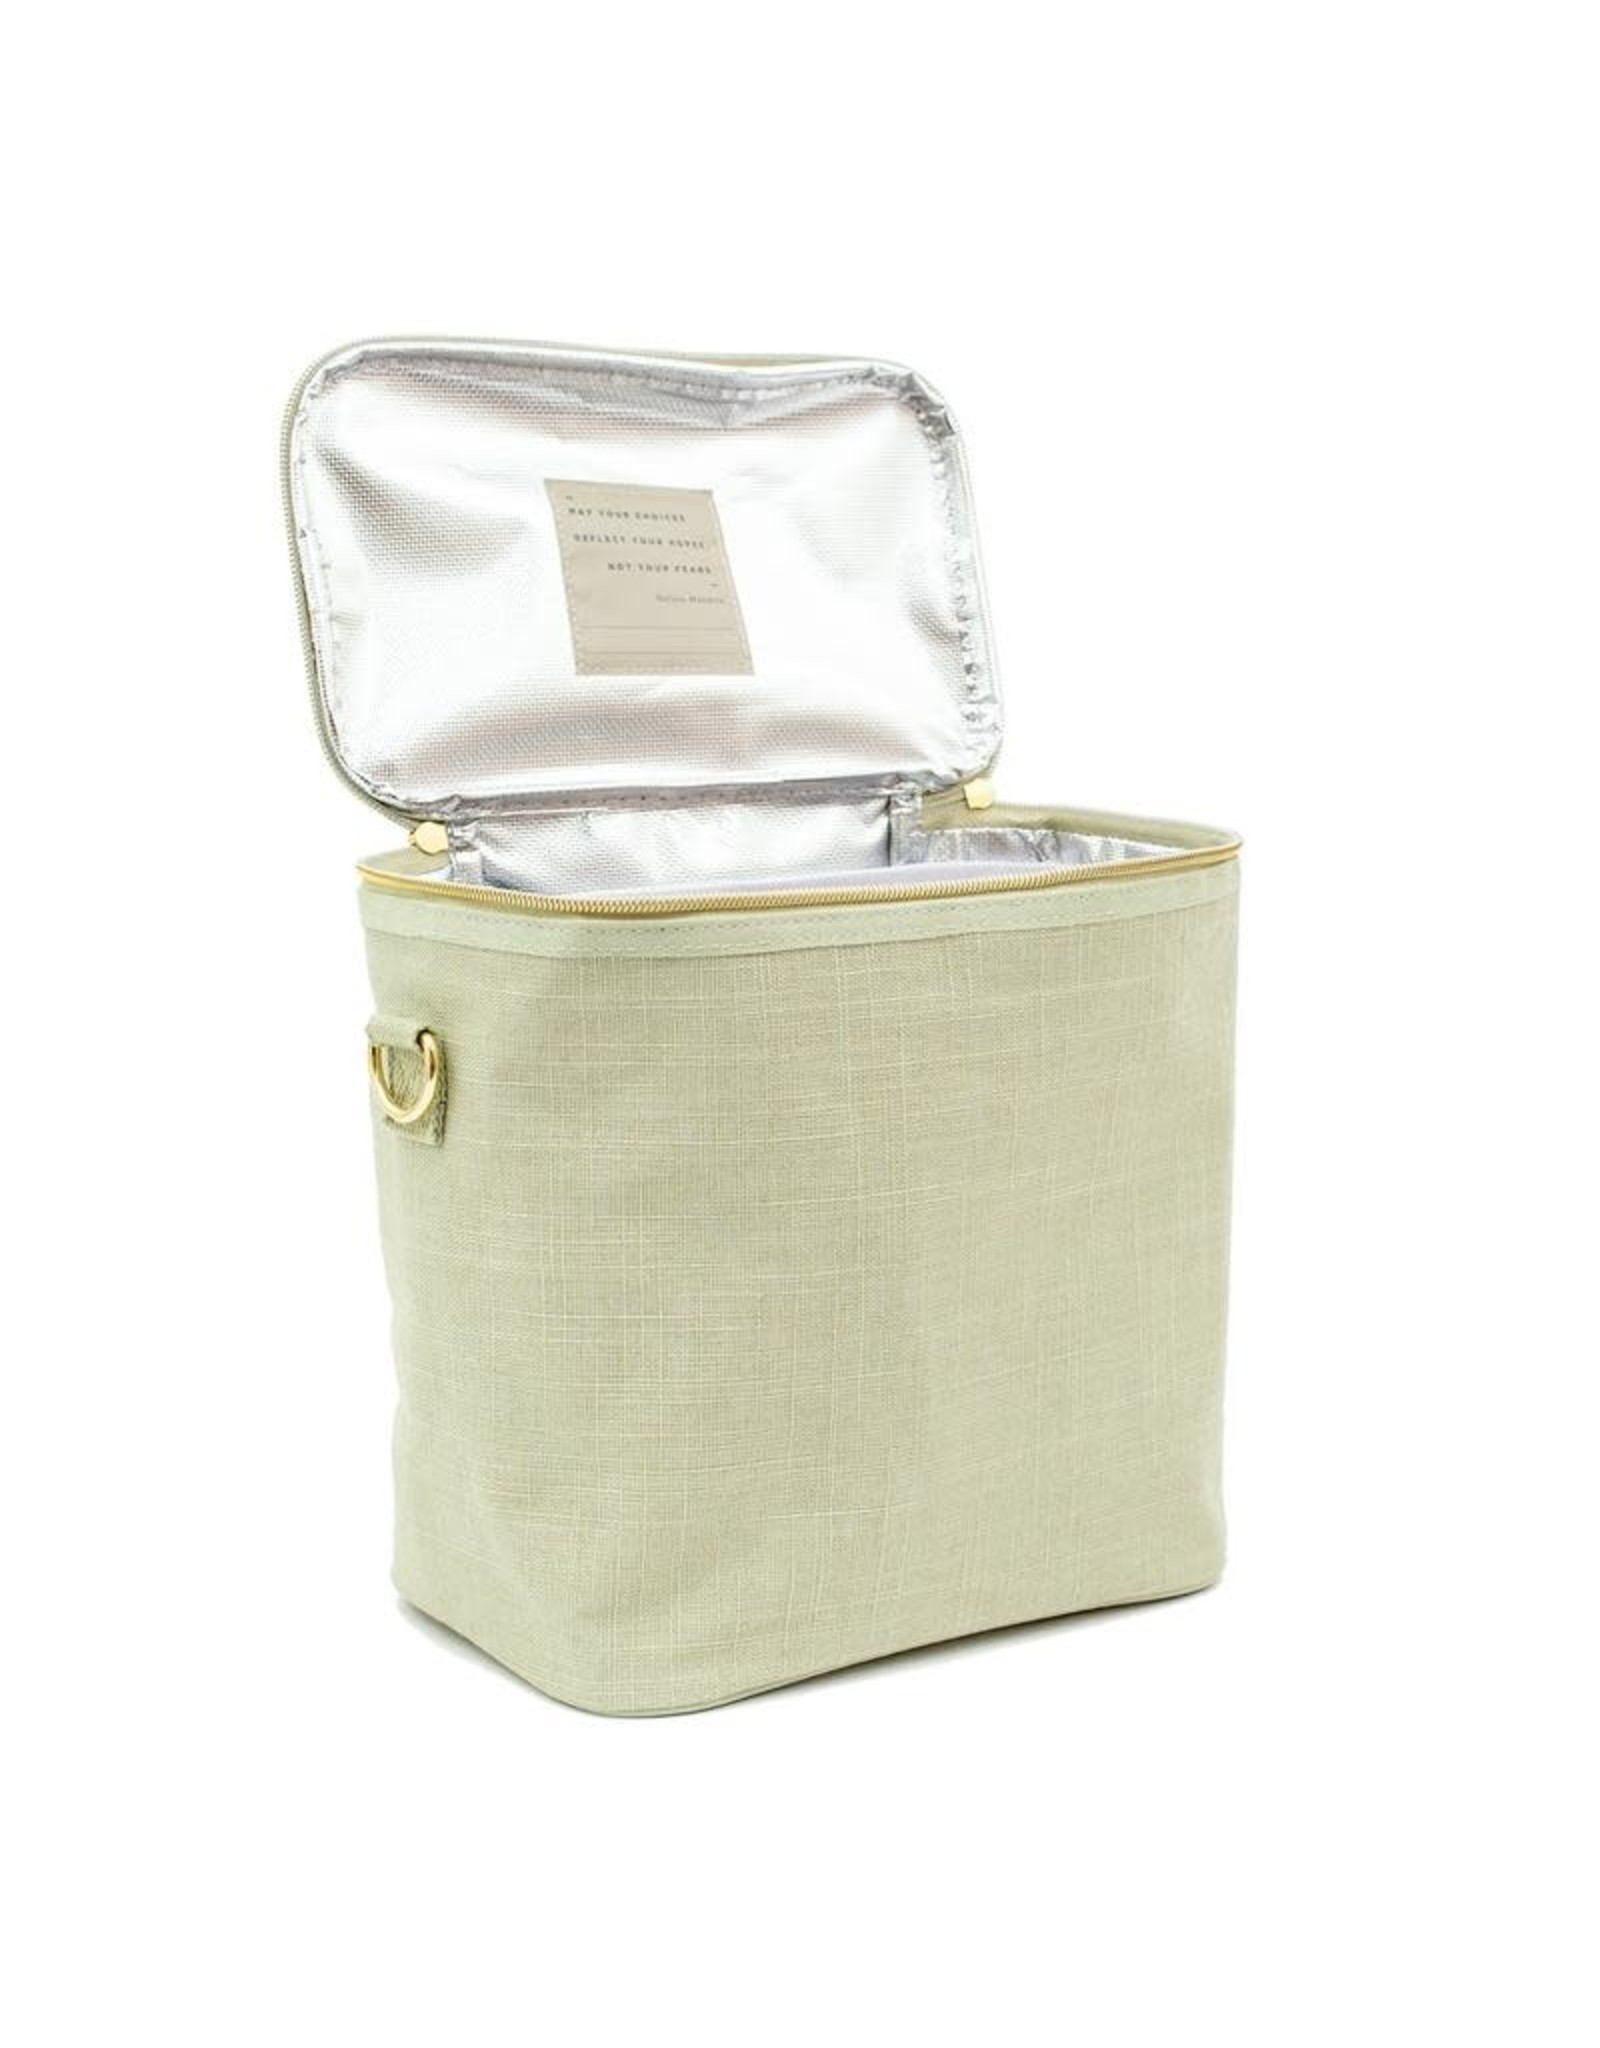 So Young Linen Lunch Poche, Sage Green